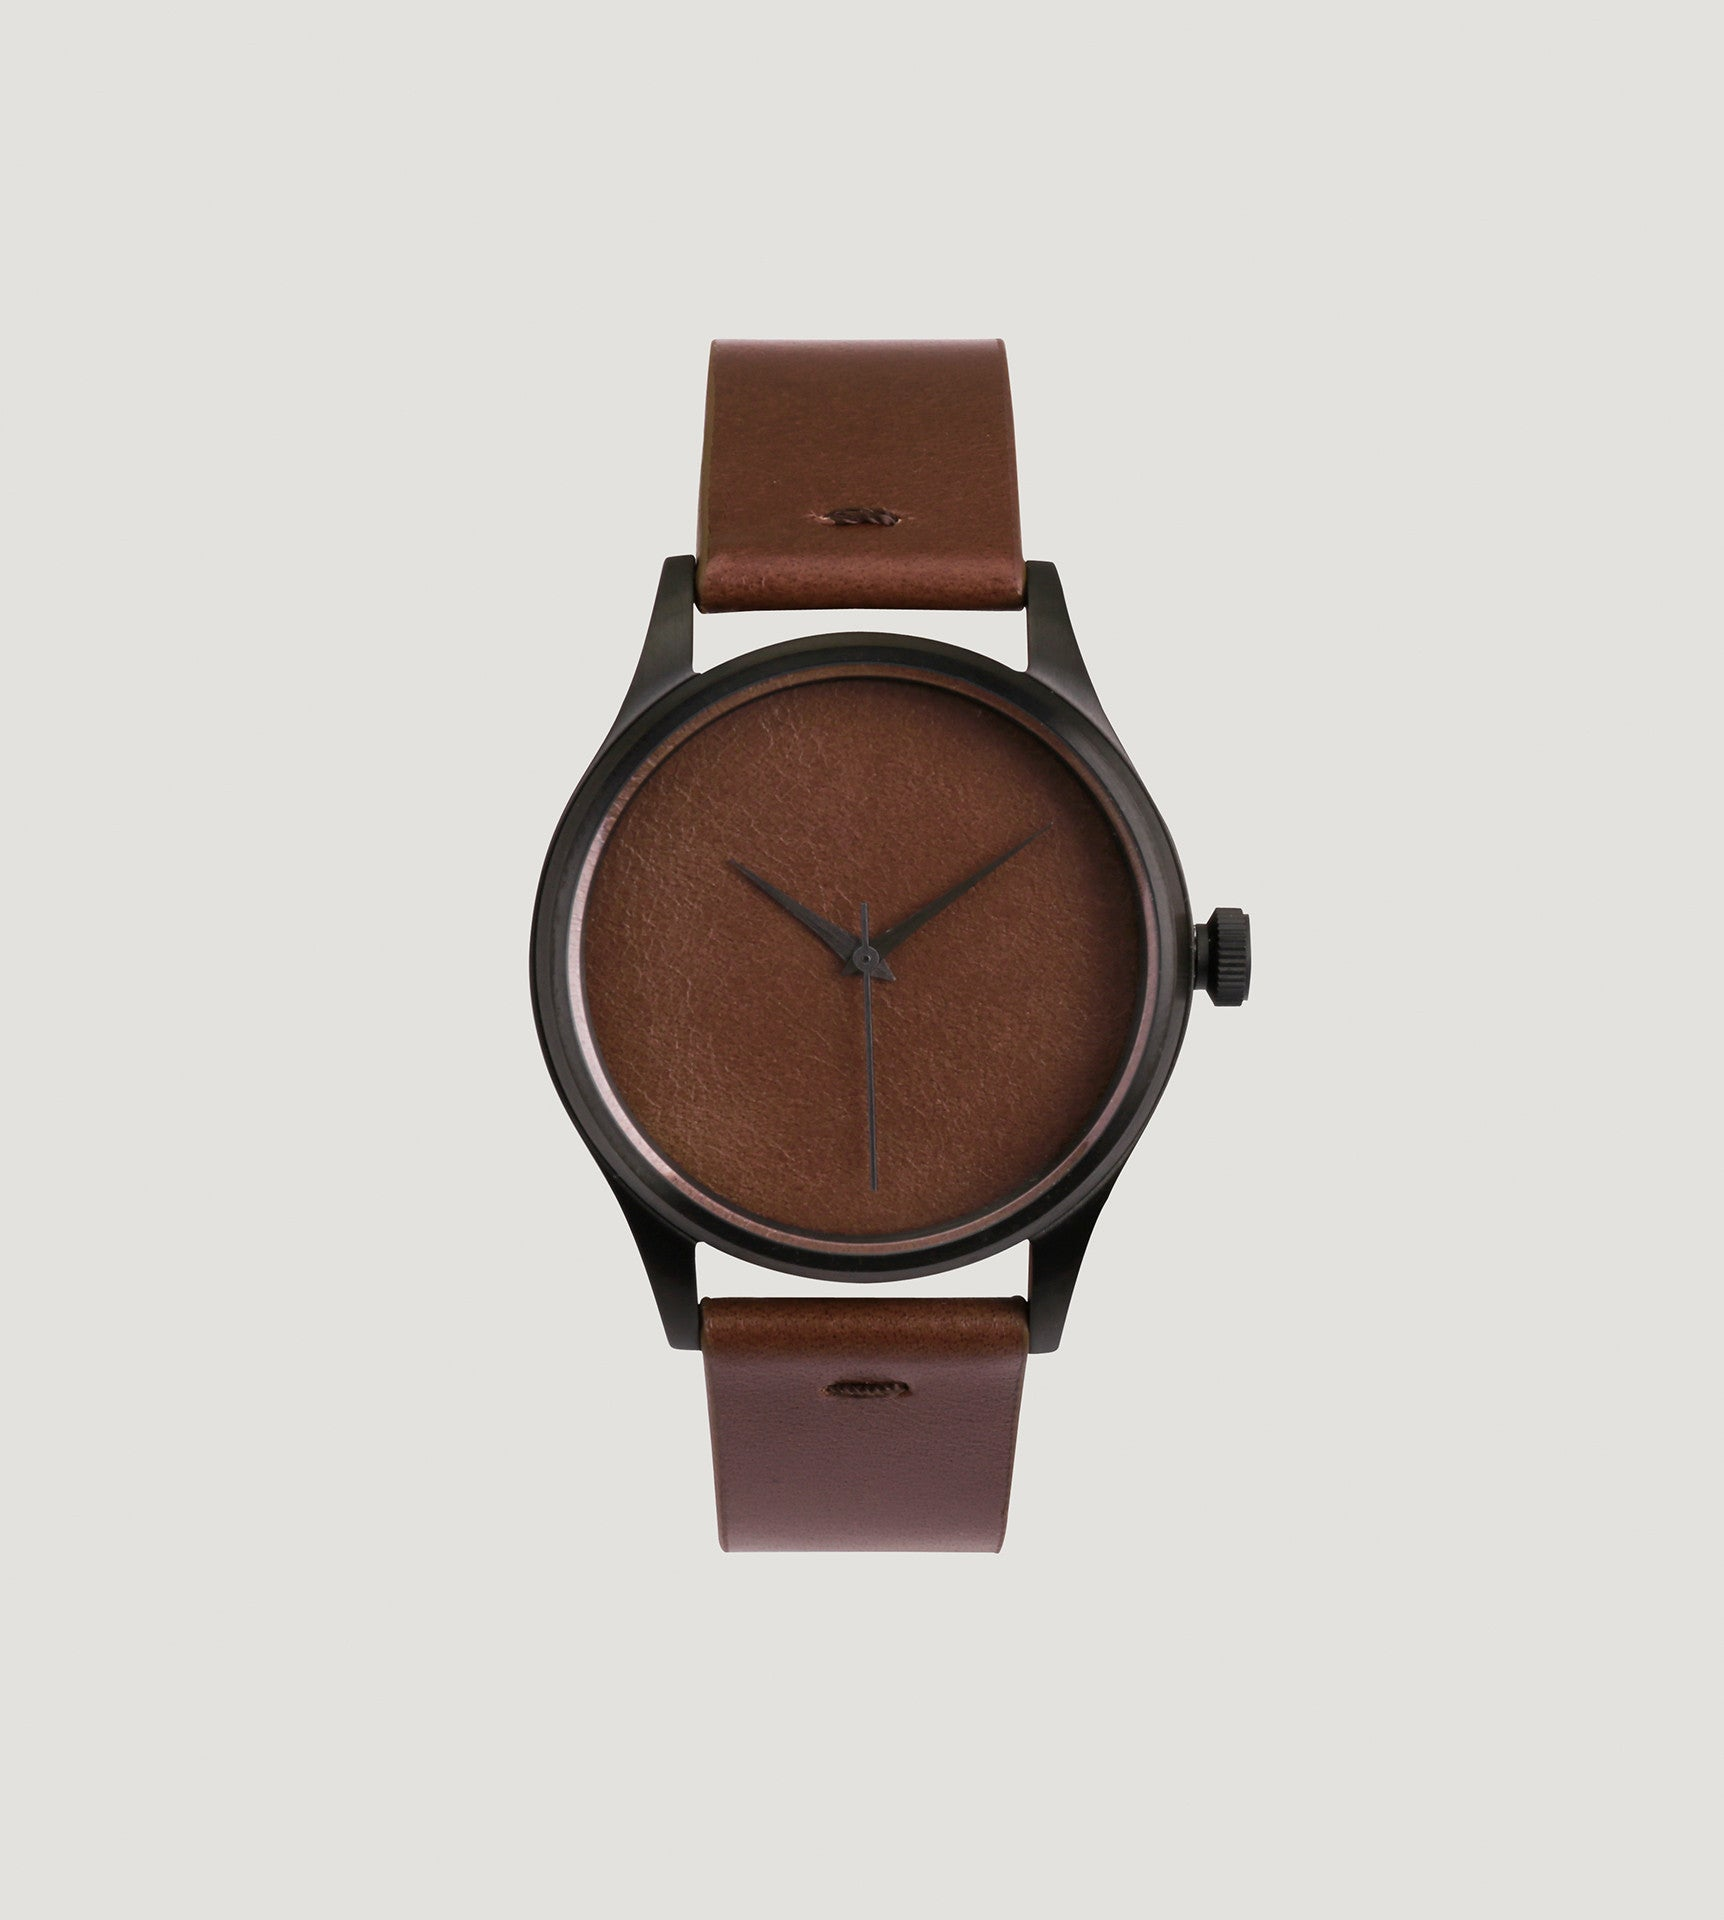 ibility - Designer nude watch - In One's Skin Serious